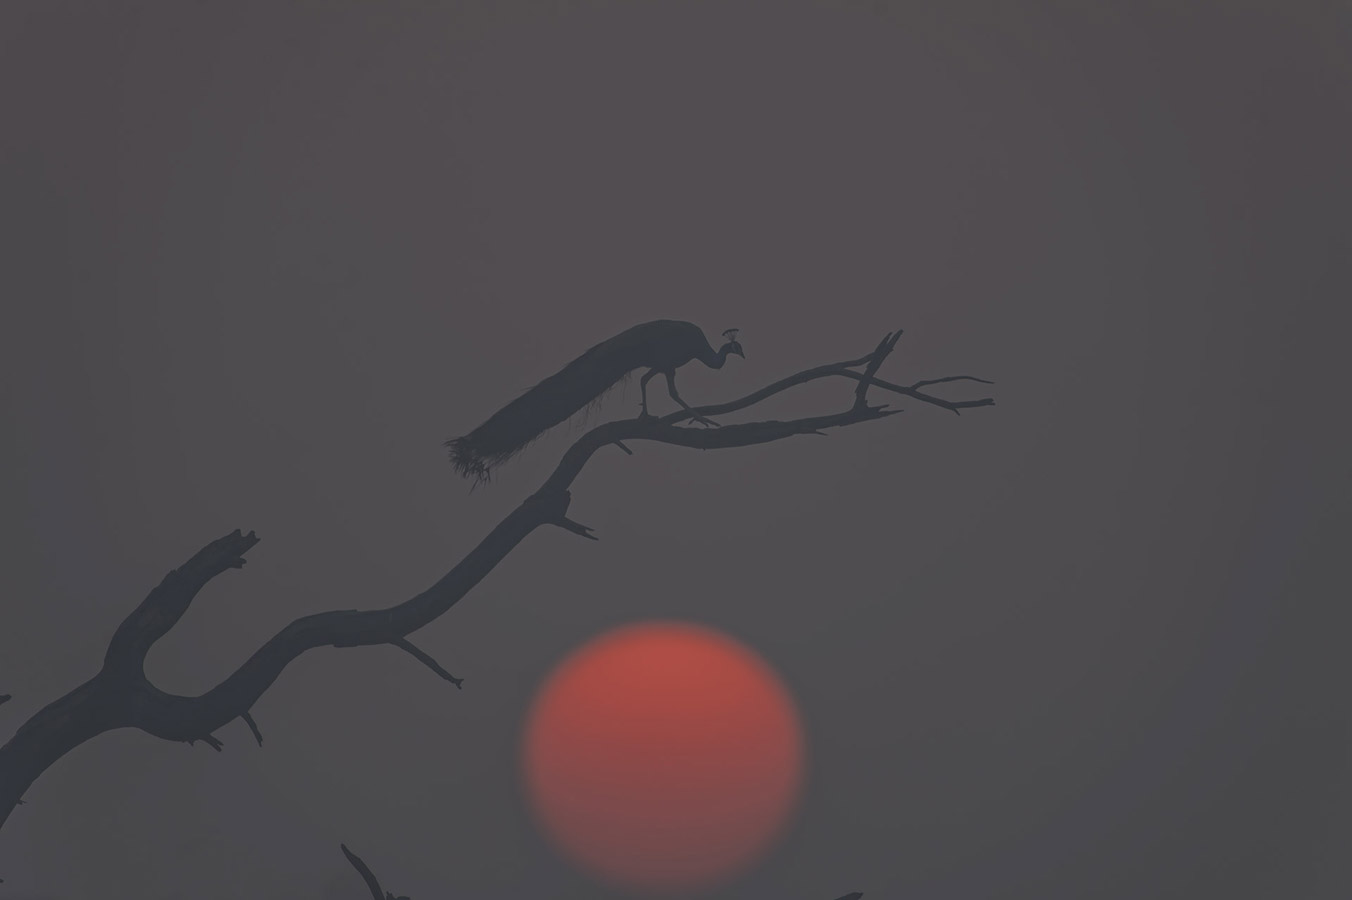 Morning mist, © Vinod (Baiju) Patil, Aurangabad, India, Highly Honored Birds, Nature's Best Photography Asia